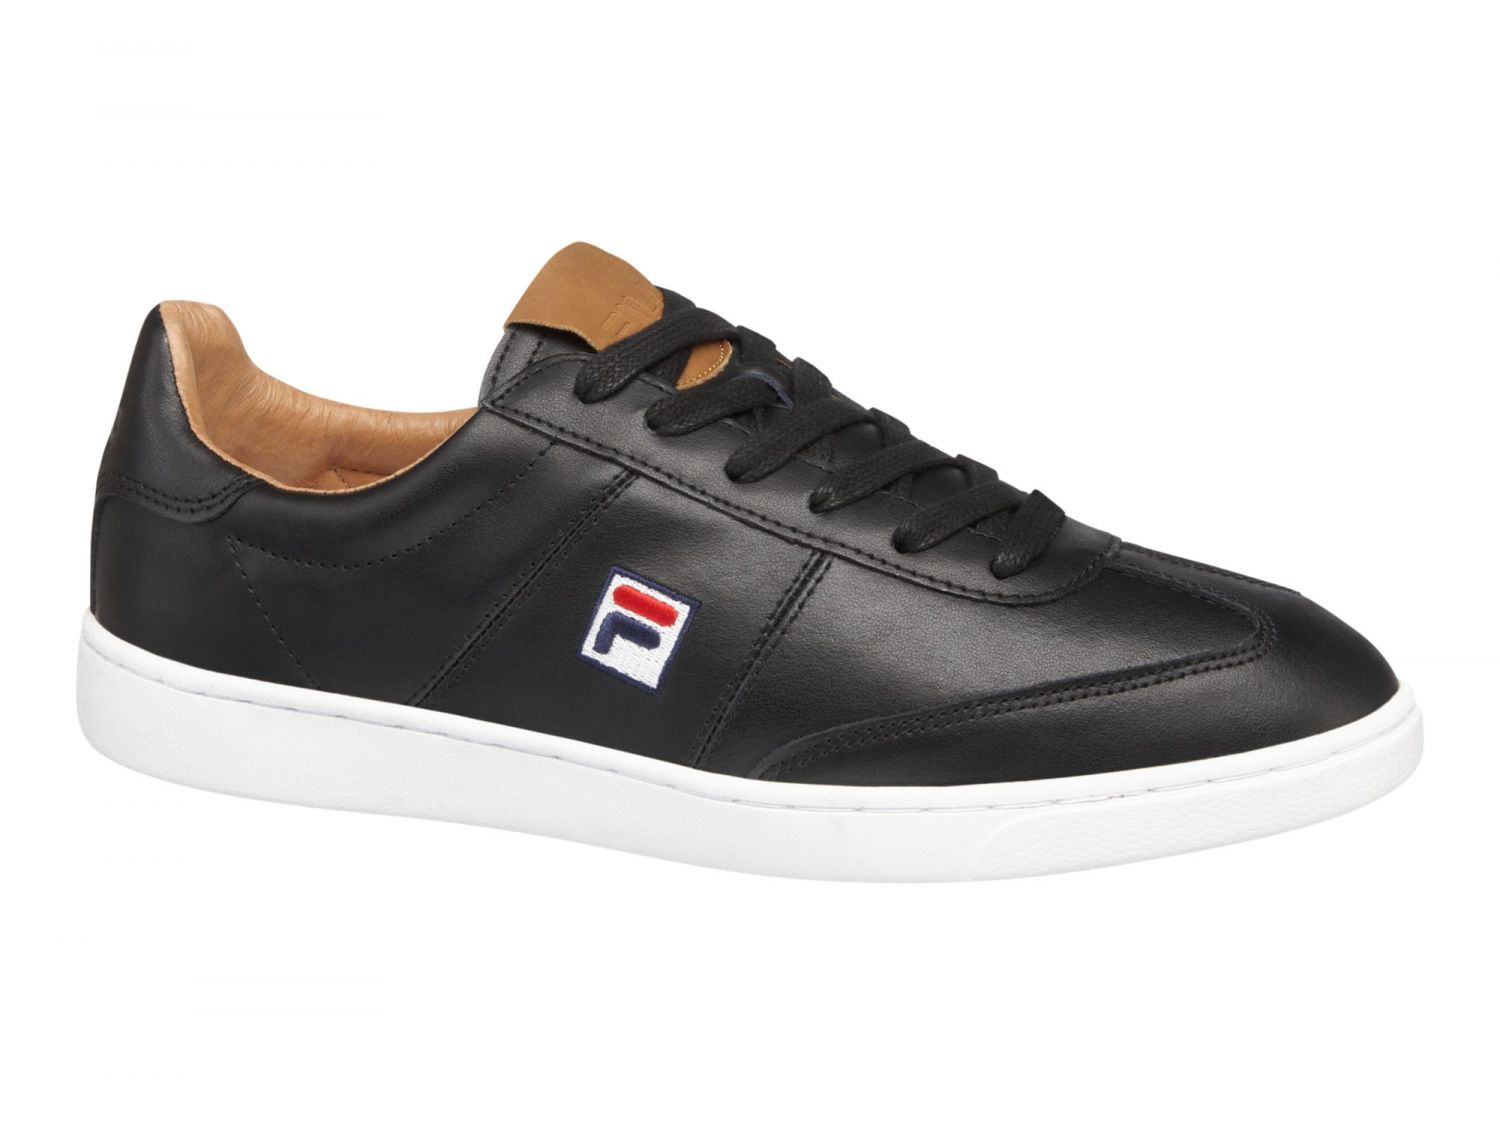 fila sneaker portland leather low 00014201230062. Black Bedroom Furniture Sets. Home Design Ideas